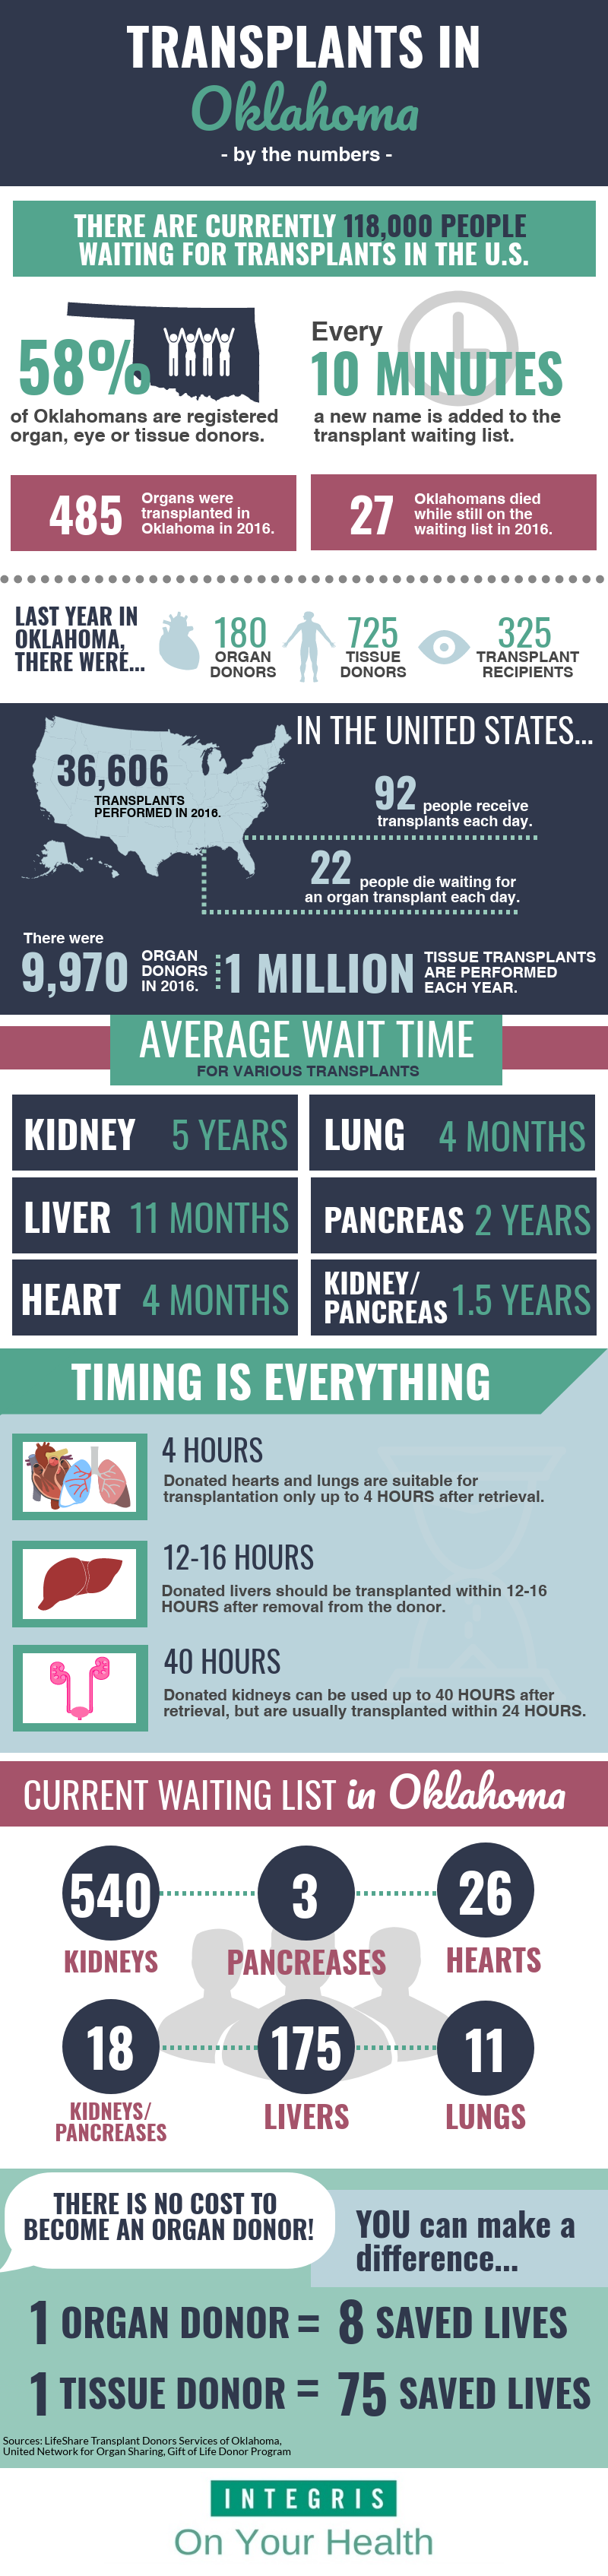 infographic of transplant stats